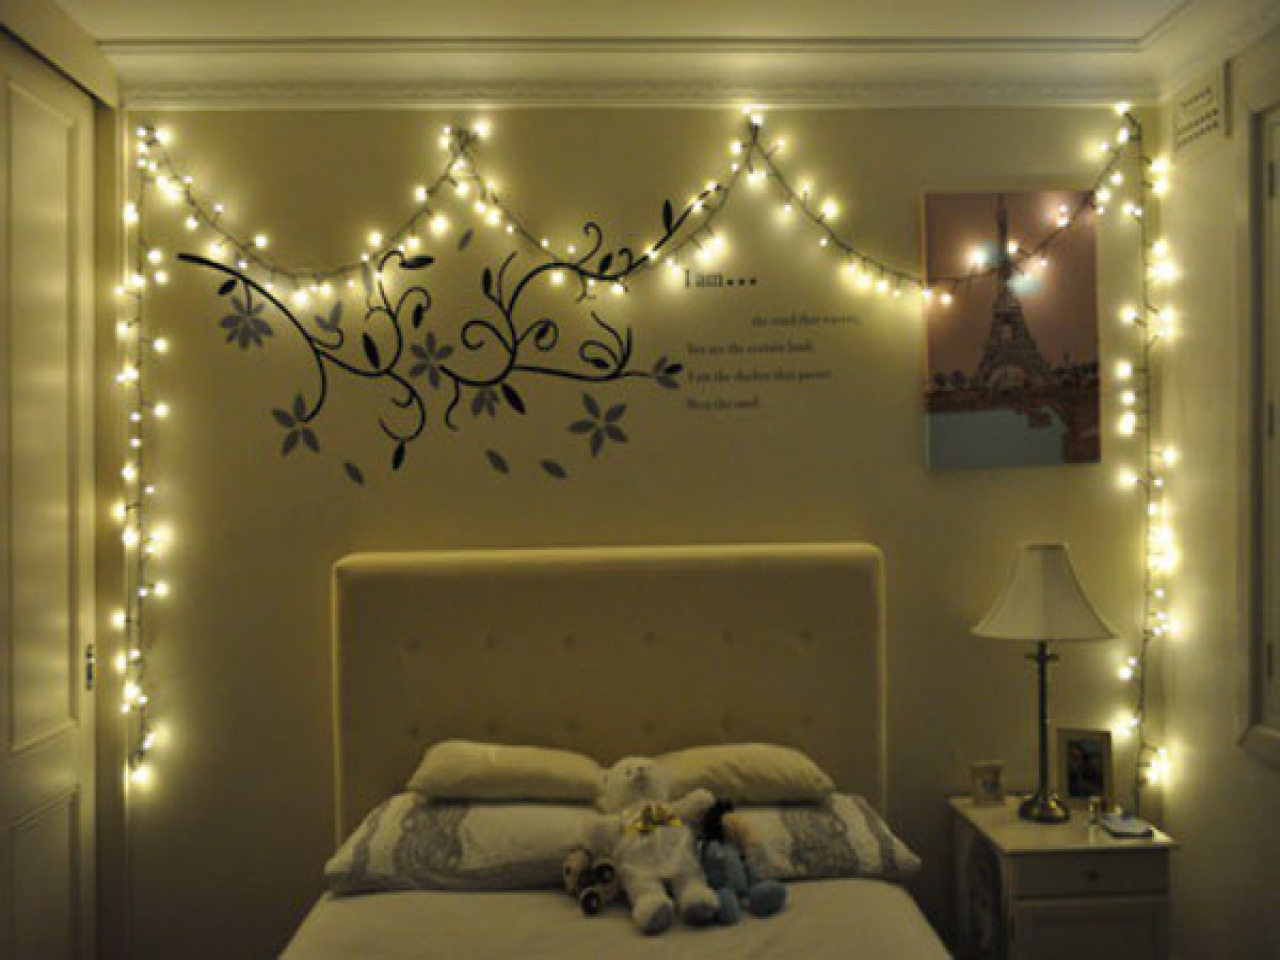 christmas lights room decor arlene designs yearroundchristmaslightsdecorationideas14 yearroundchristmaslightsdecorationideas15 - Bedroom Ideas Christmas Lights